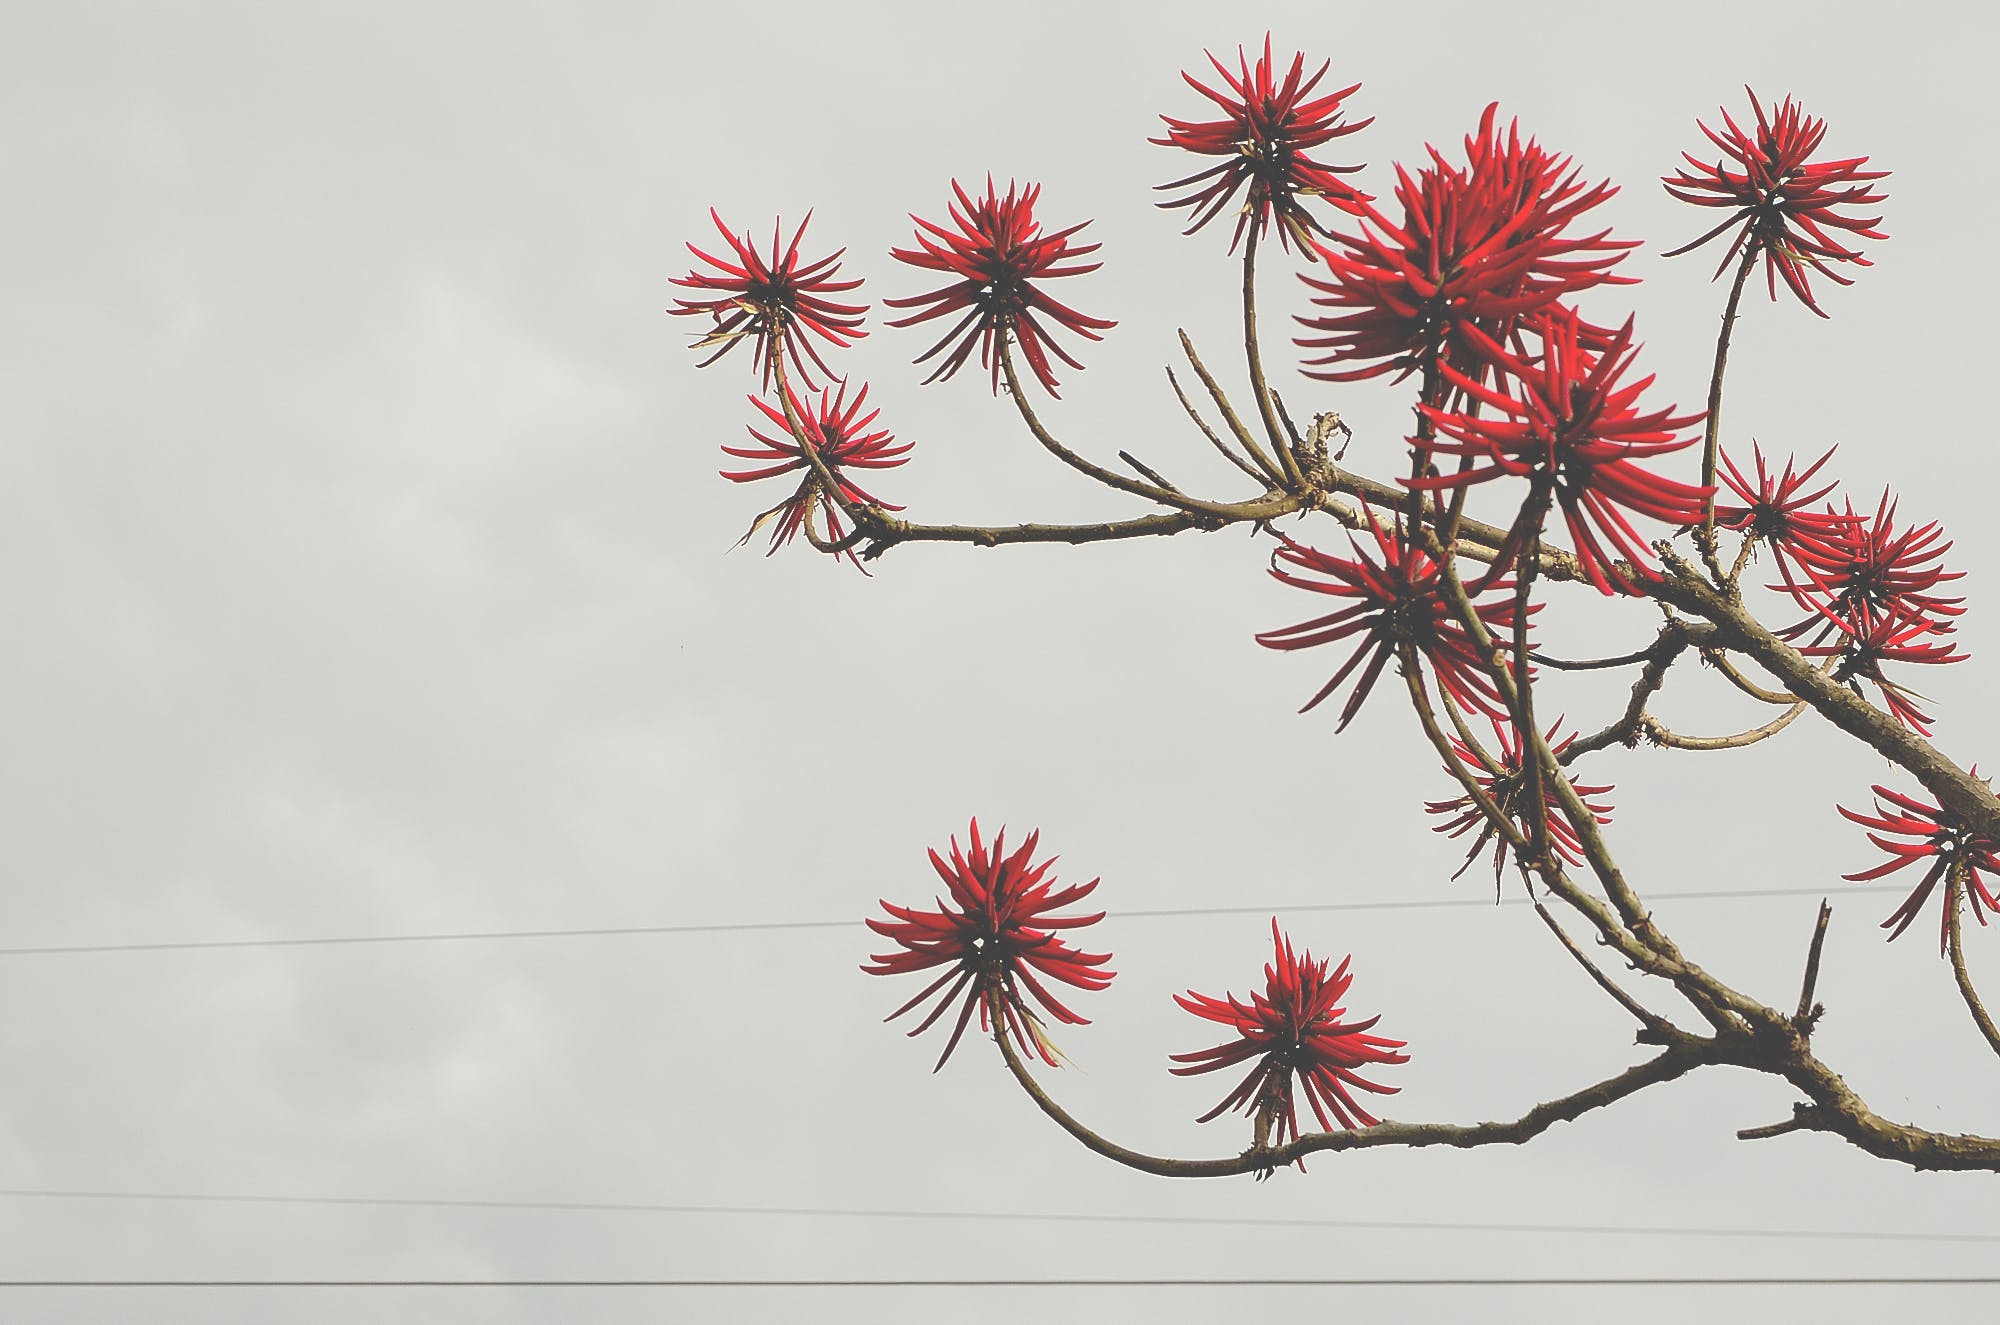 Red Flowers Bloomed Front Brown Tree Branch